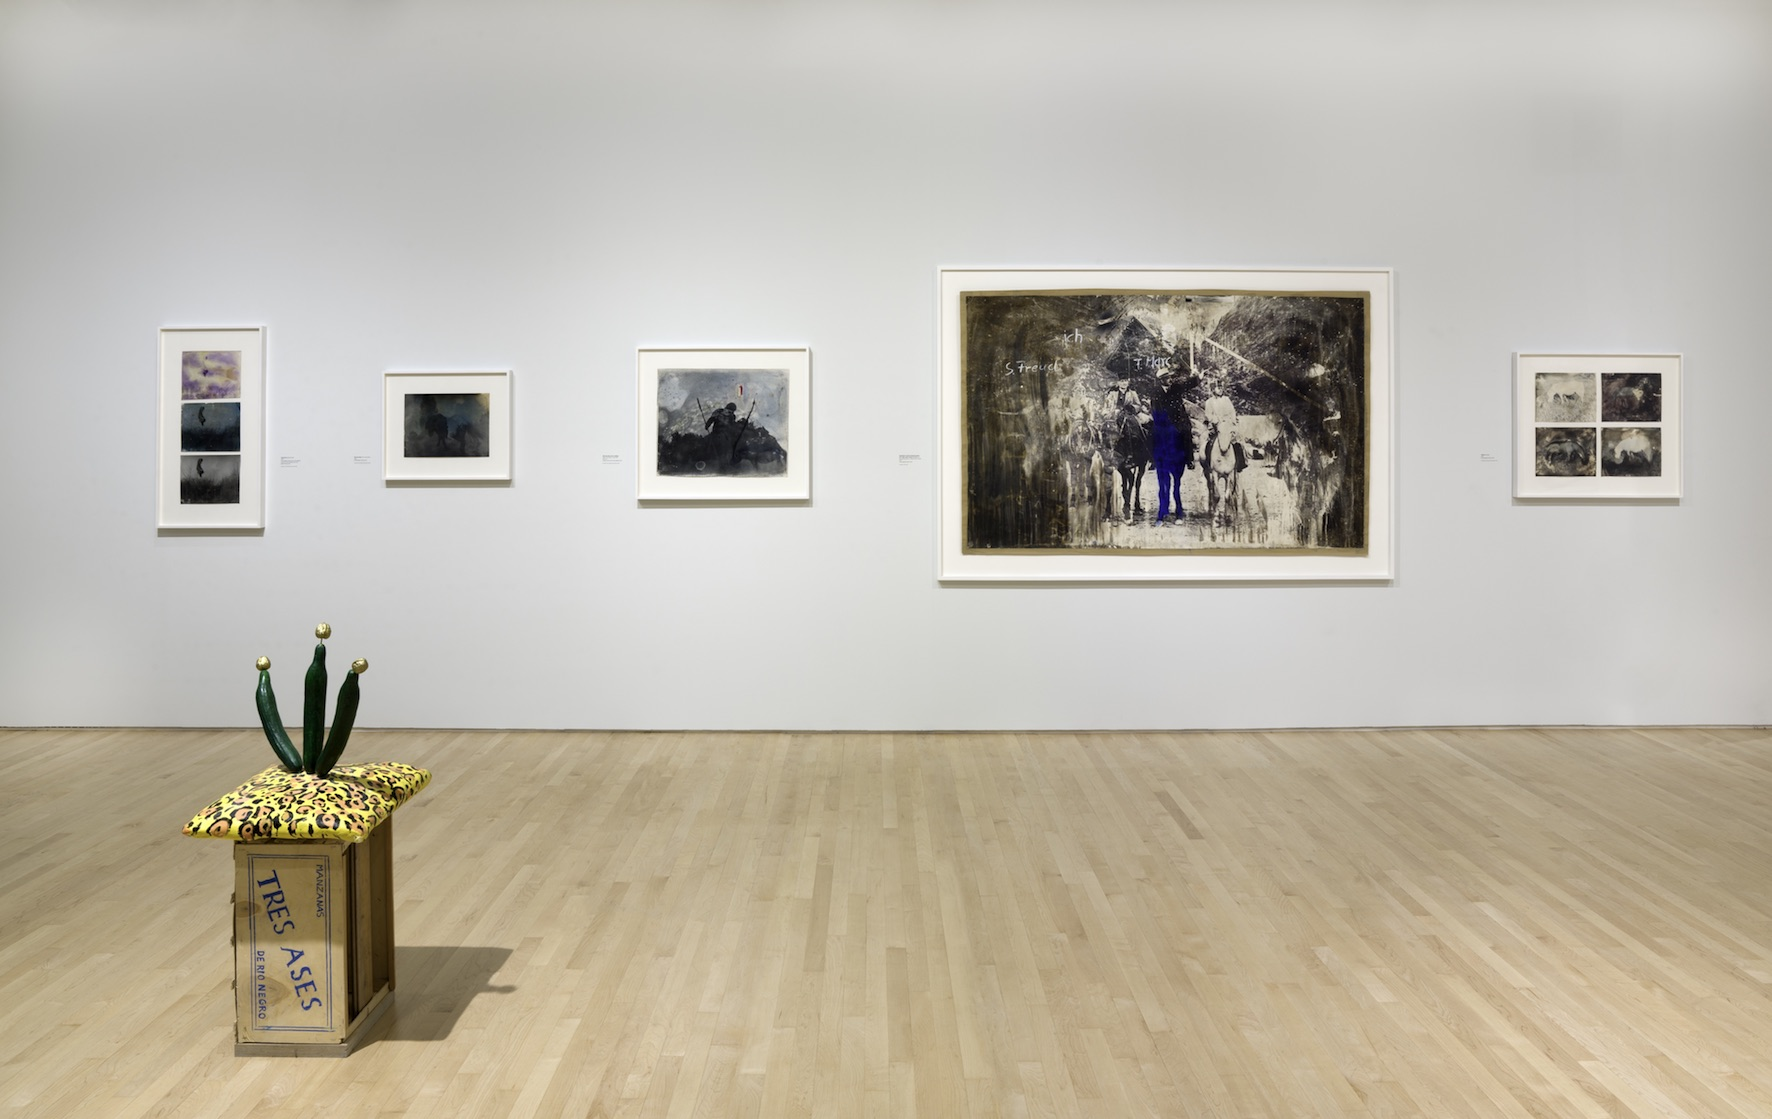 Johannes Brus, installation view at the San Francisco Museum of Modern Art, Oct 27, 2018 - Jun 16, 2019, photo Katherine Du Tiel